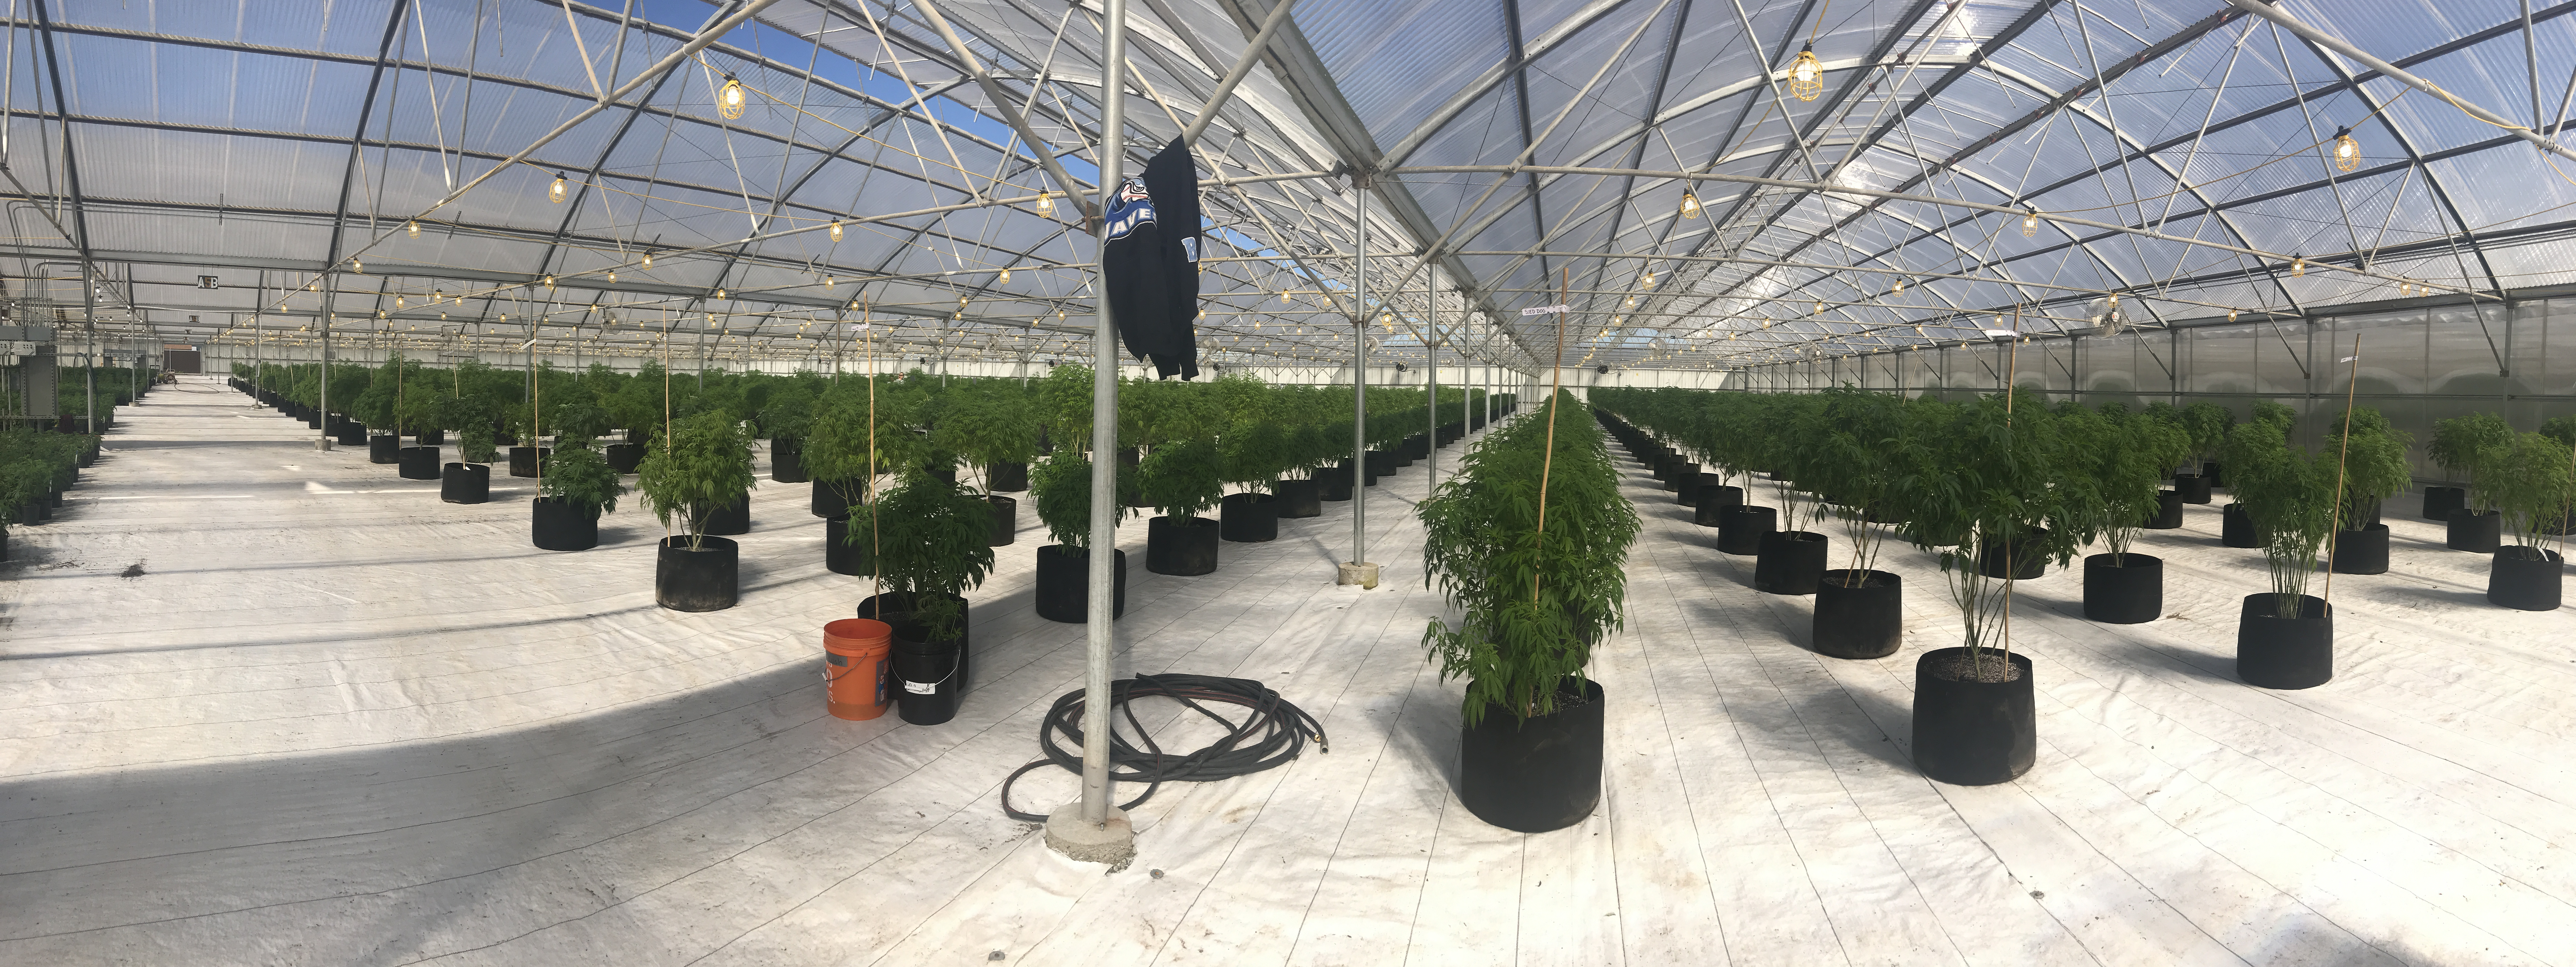 Cannabis Starts Operation In Salinas  Coastside Buzz Photoessay I Went On A Tour Of The Commercial Cannabis Operation Pacific  Reserve Nursery In Salinas With Dustin Cline And Eric Hollister  Philadelphia Business Plan Writers also Thesis In A Essay  Essay Proposal Example